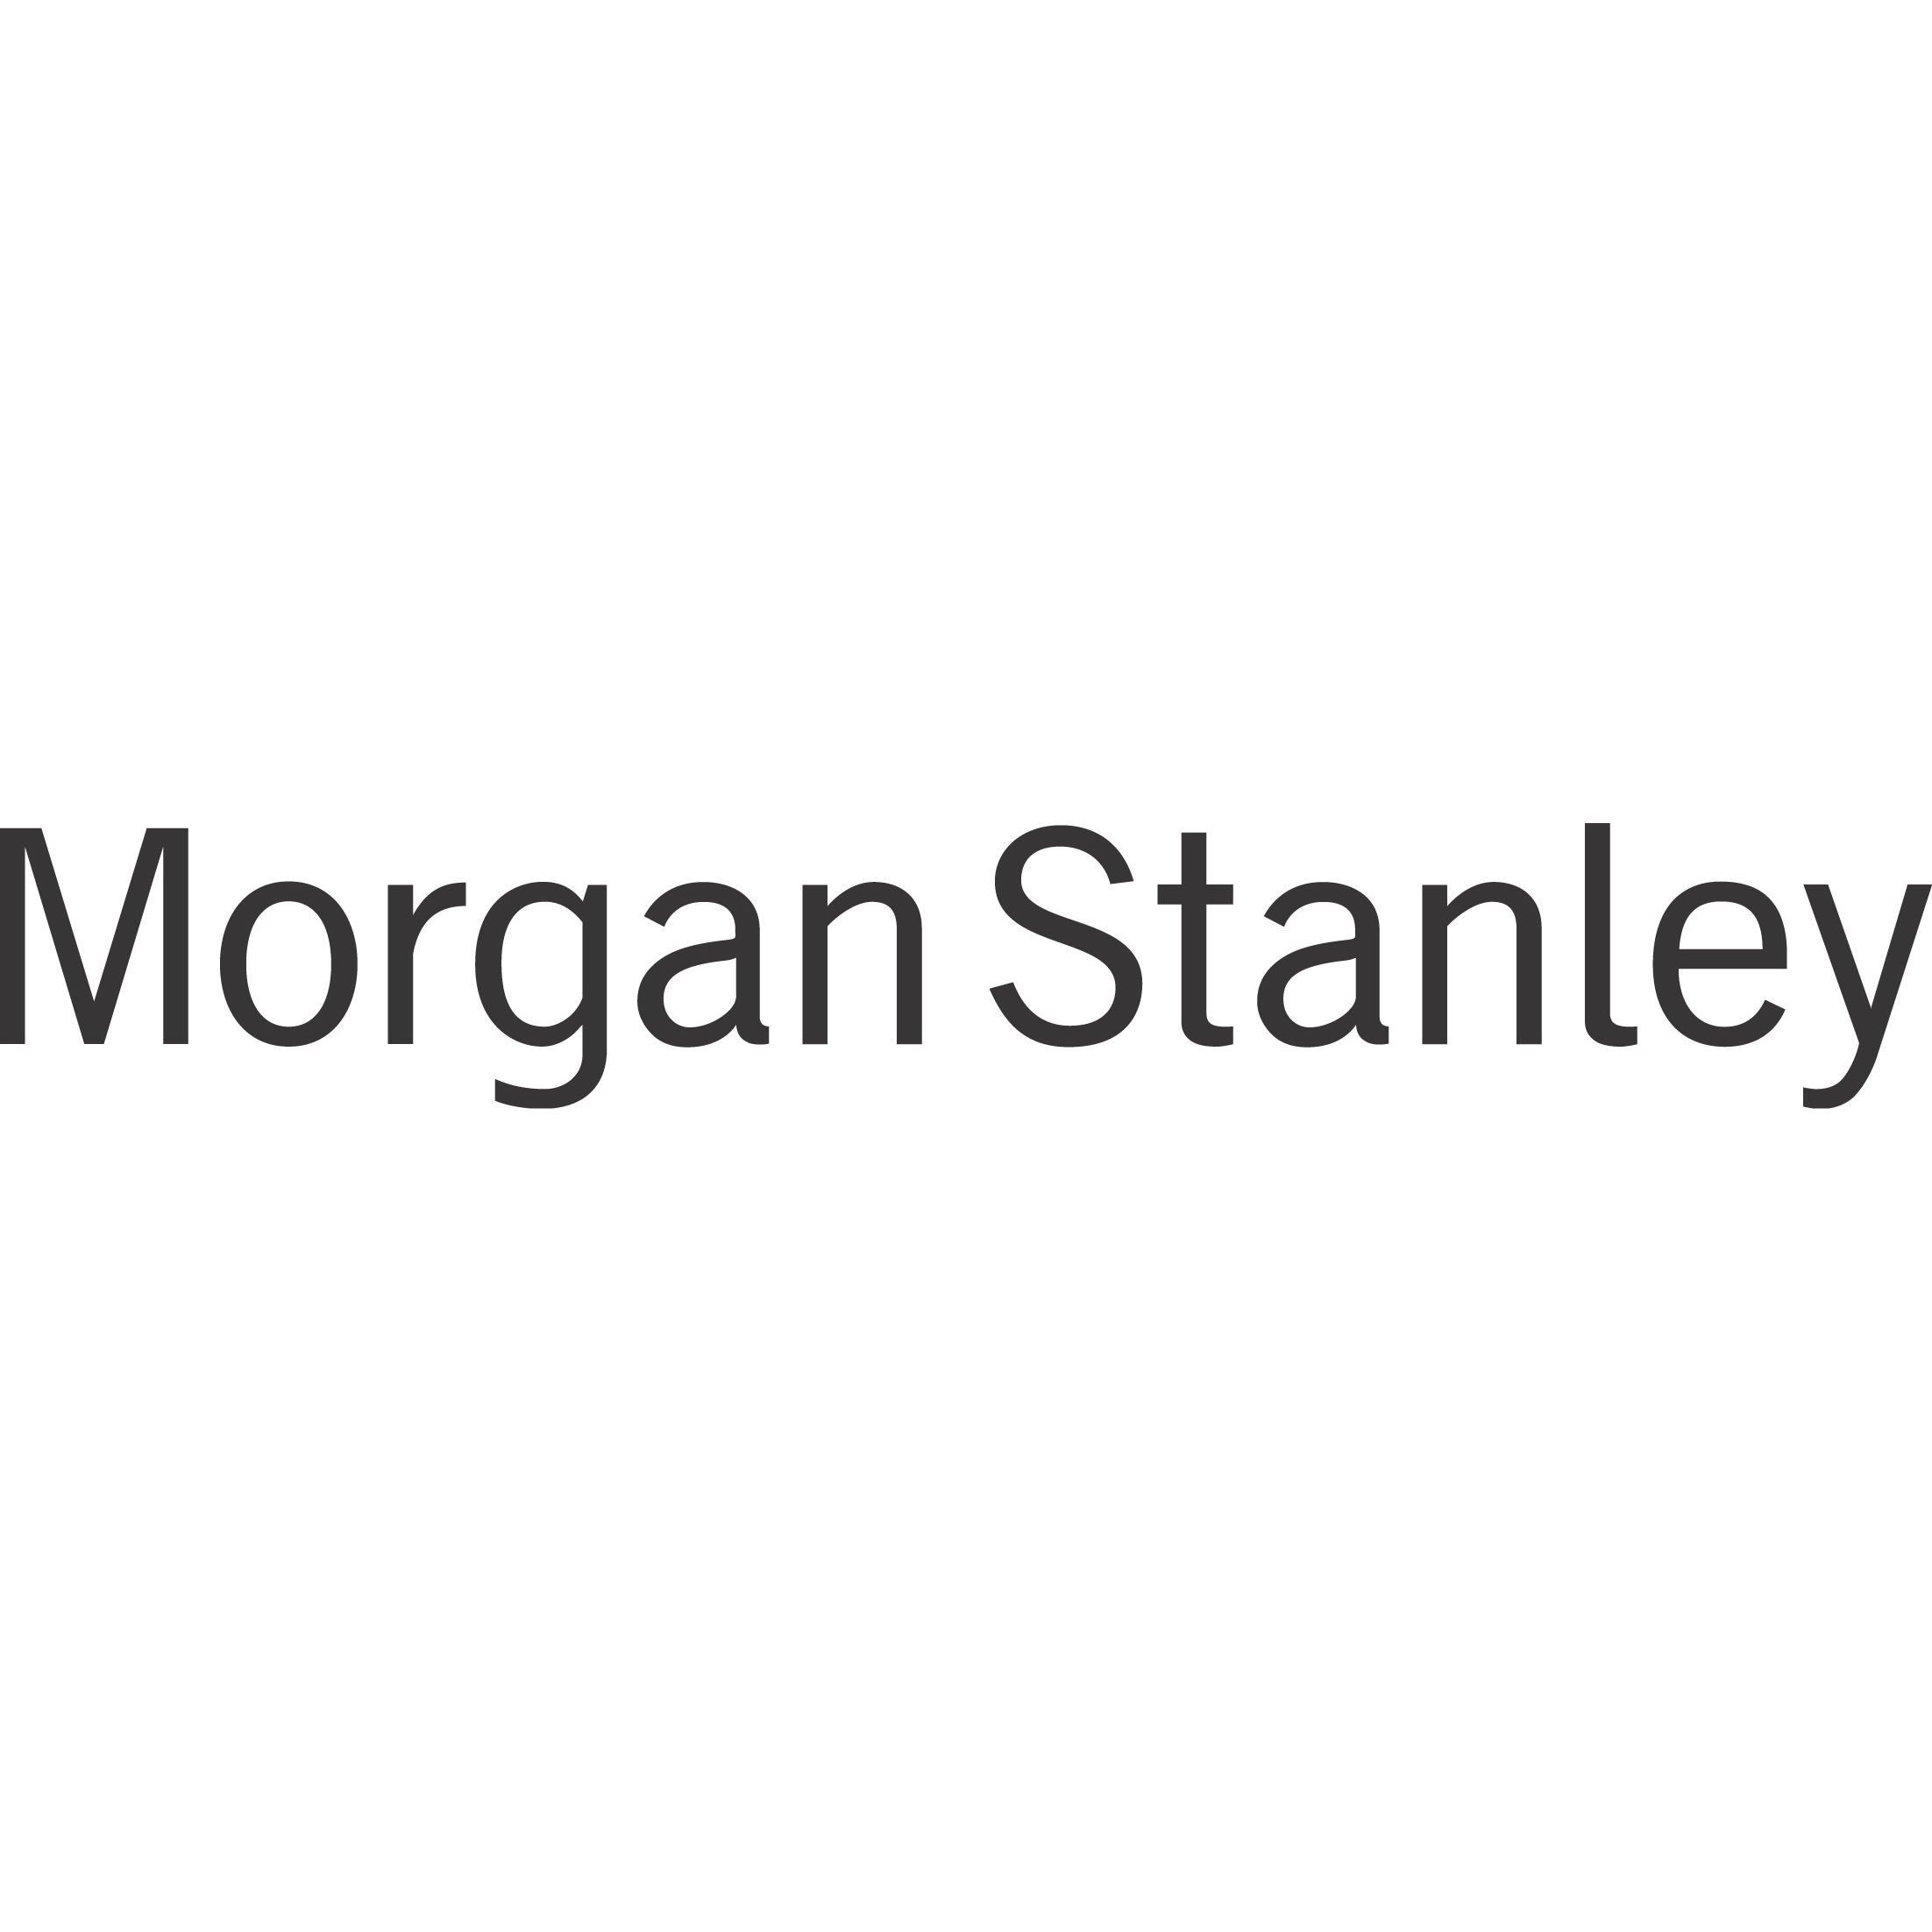 Ari Dardik - Morgan Stanley | Financial Advisor in Atlanta,Georgia